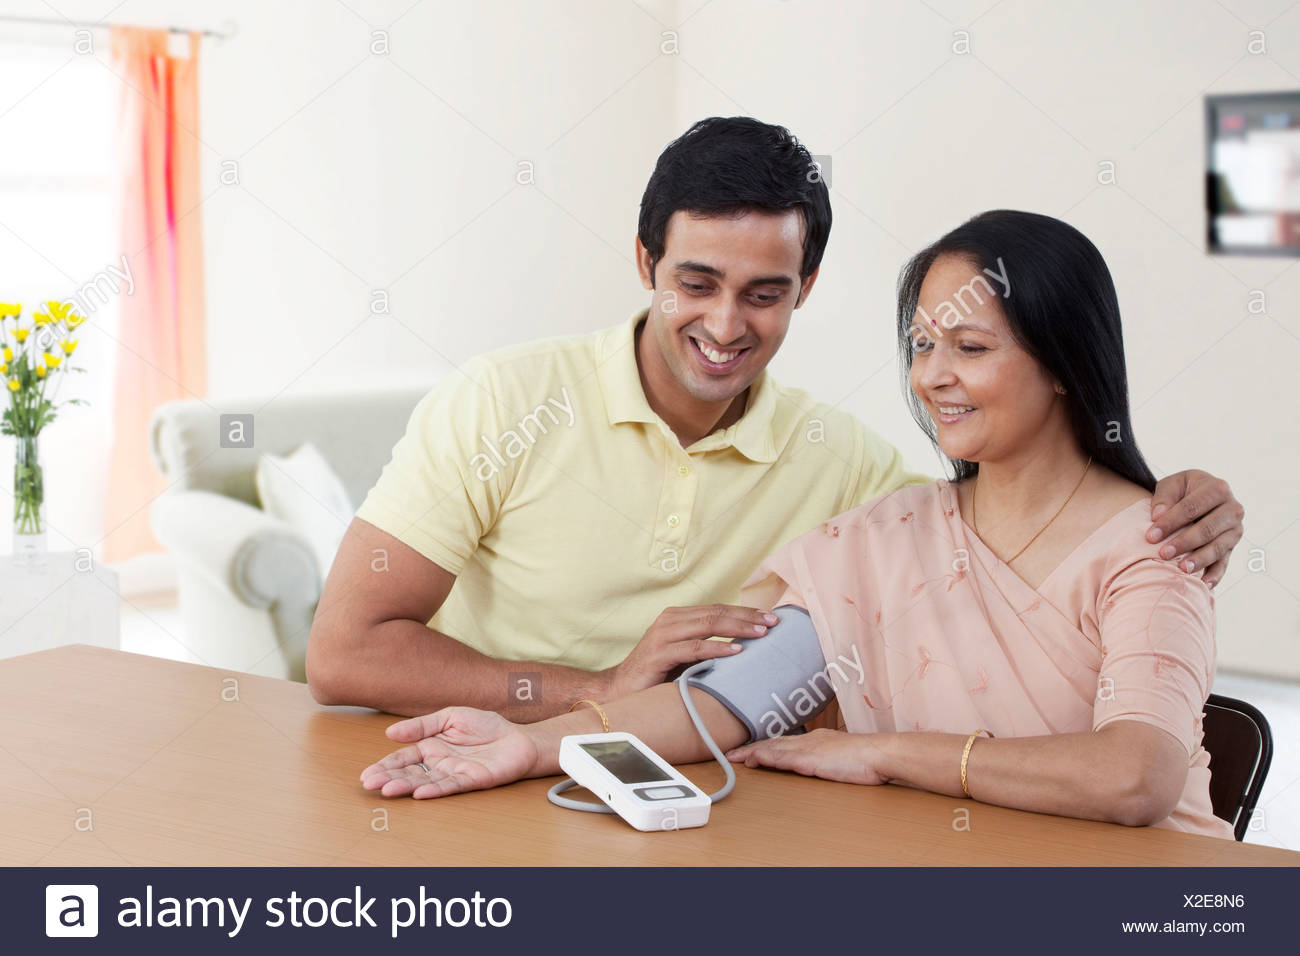 Mother and son looking at blood pressure gauge - Stock Image